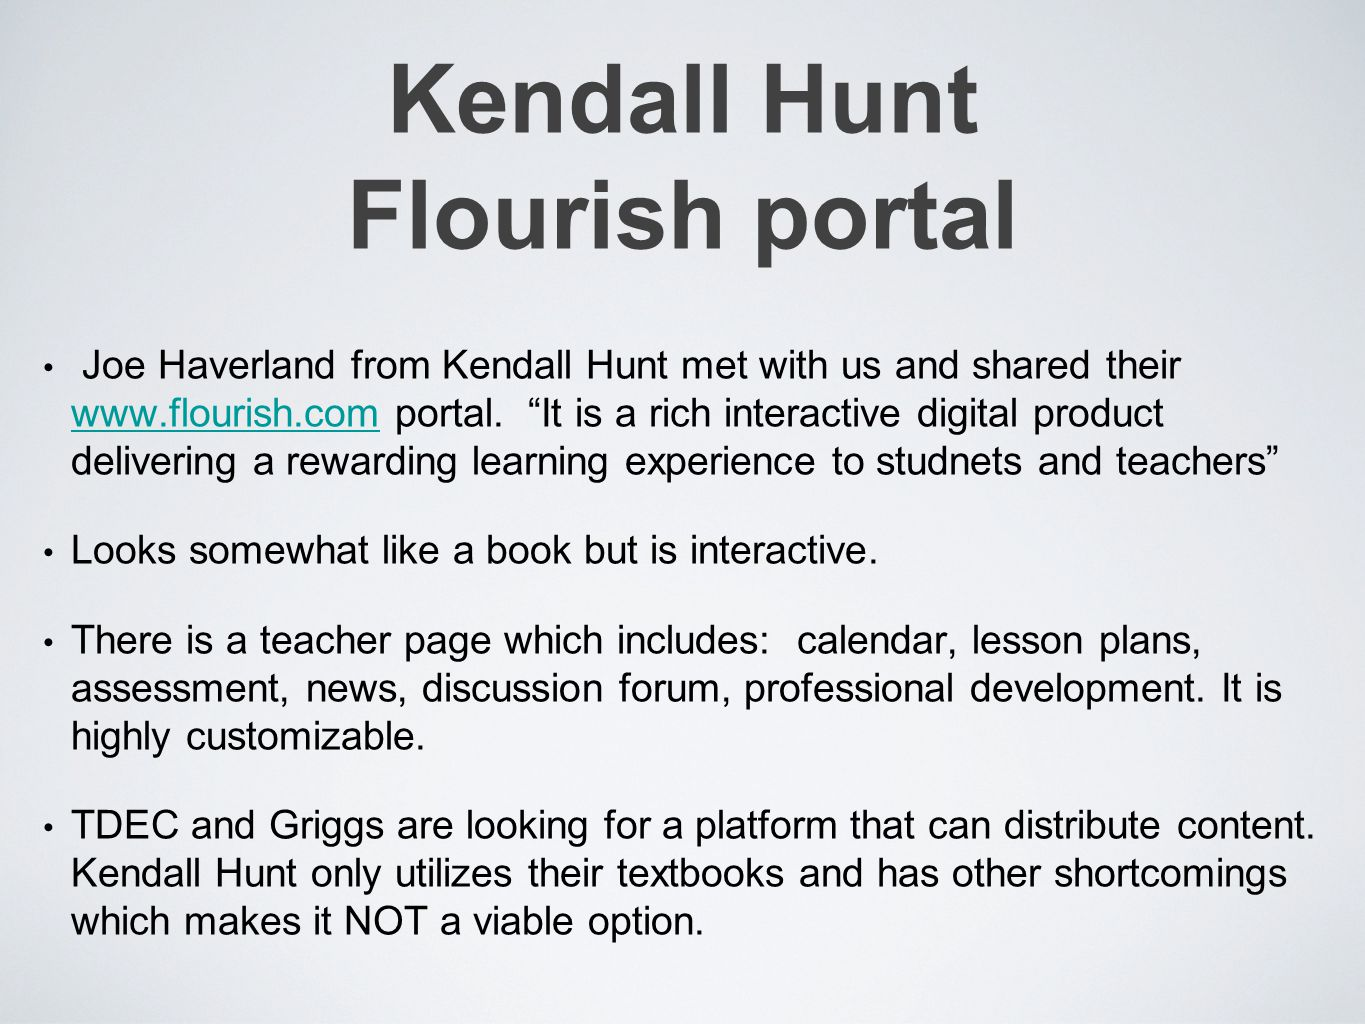 Kendall Hunt Flourish portal Joe Haverland from Kendall Hunt met with us and shared their www.flourish.com portal.